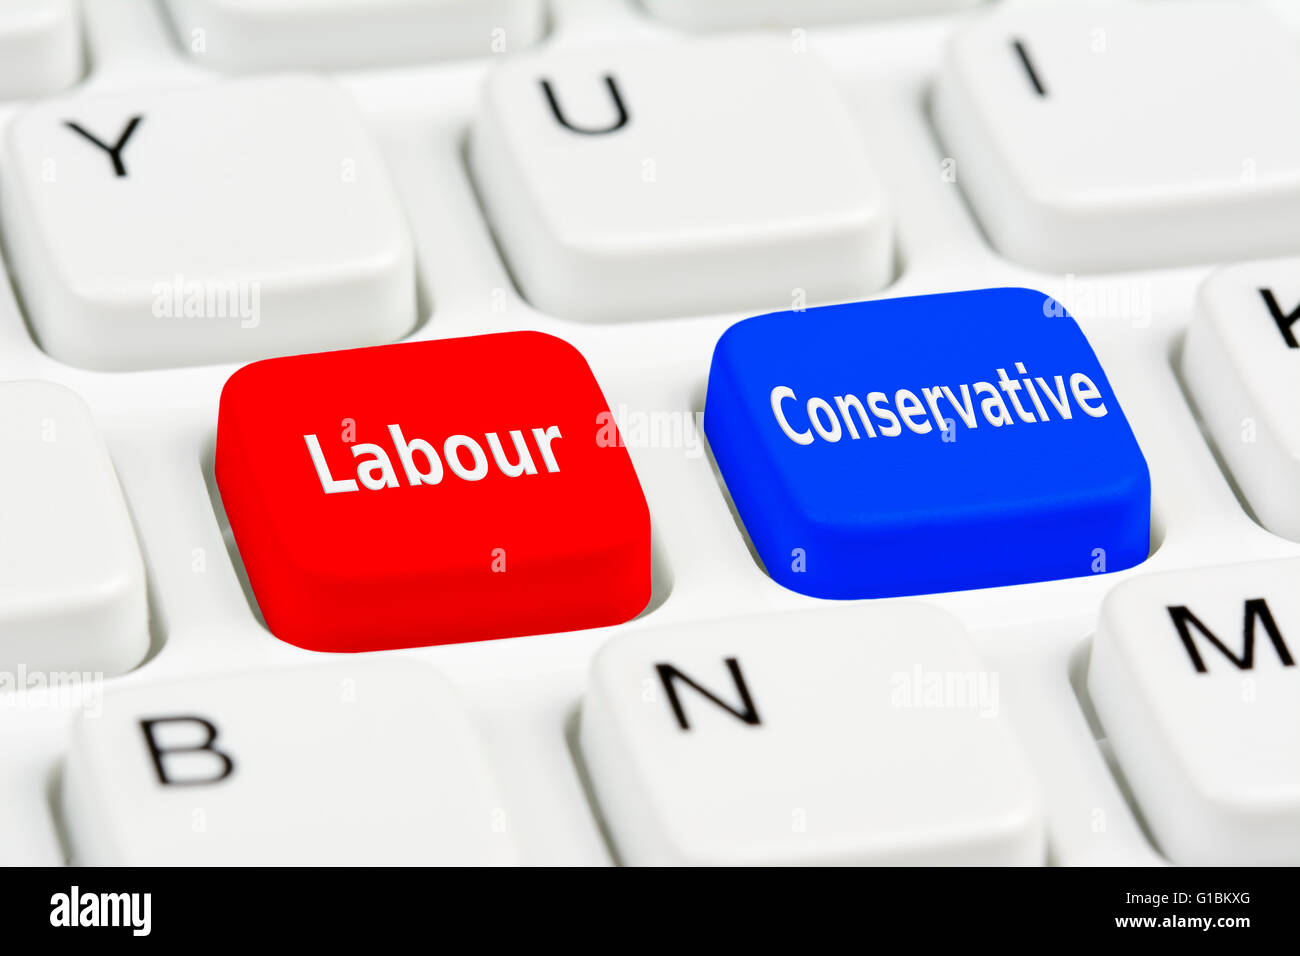 UK General Election concept. Labour and Conservative voting buttons on a computer keyboard. - Stock Image